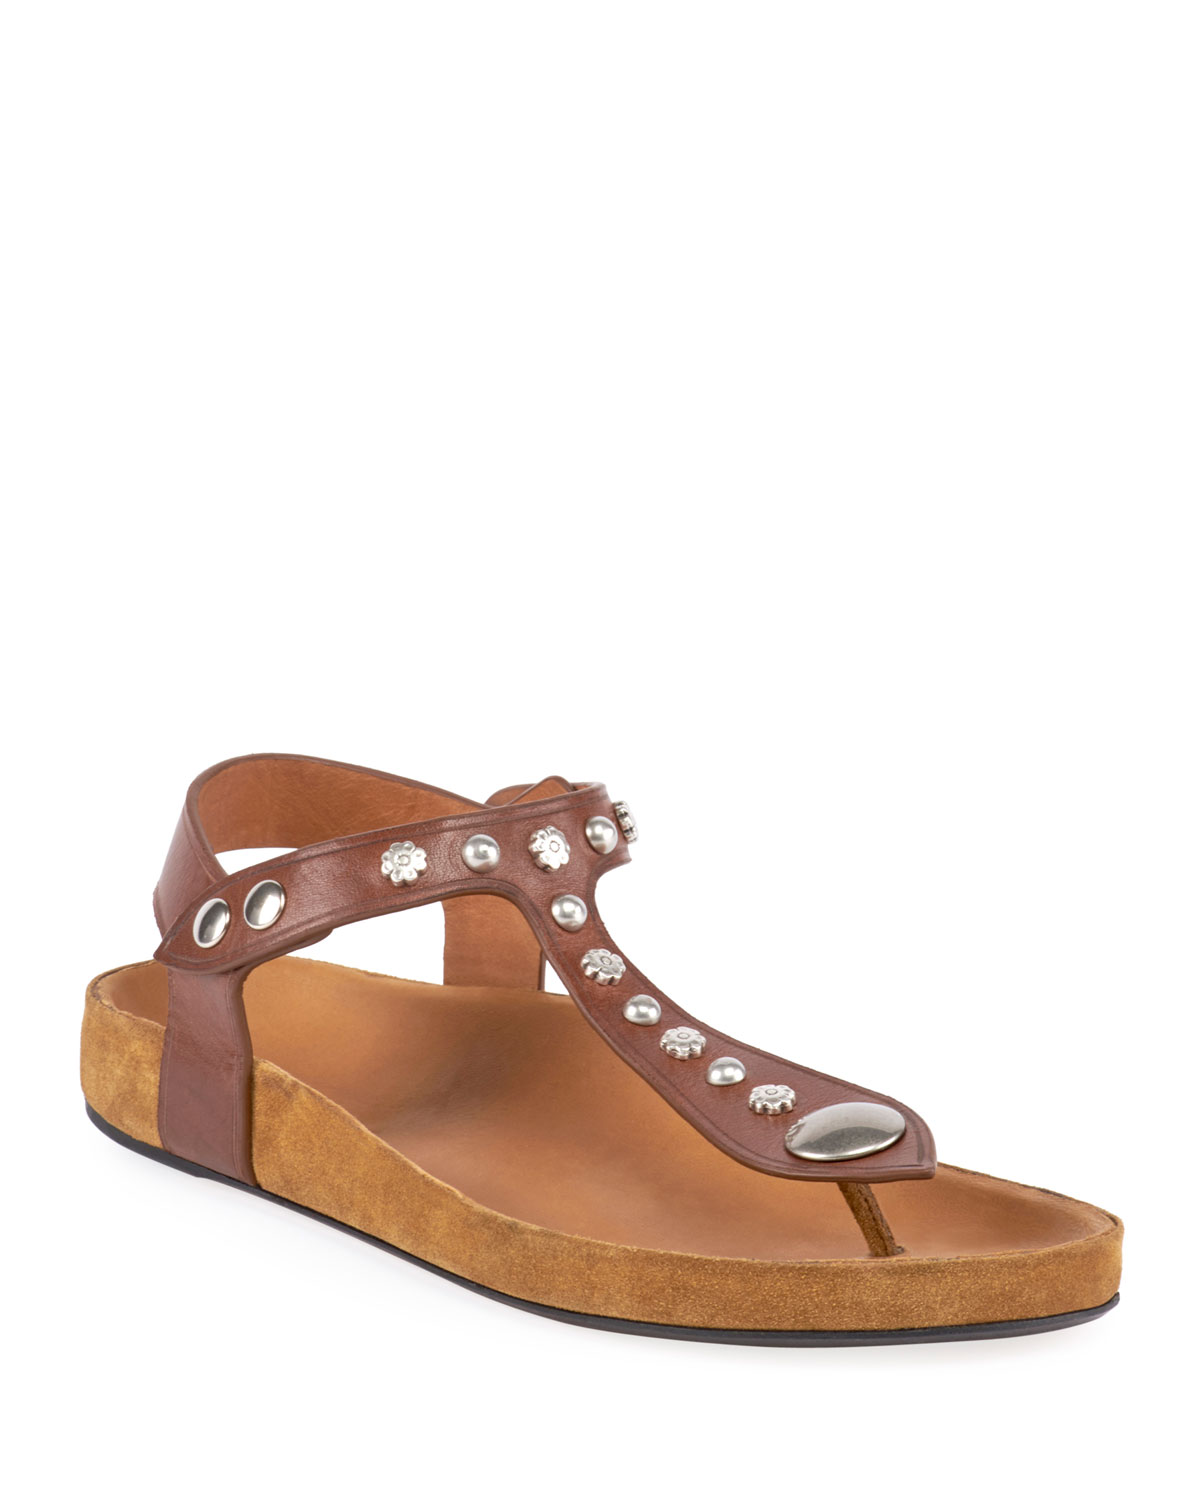 Encore Flat Studded T-Strap Sandals in Brown